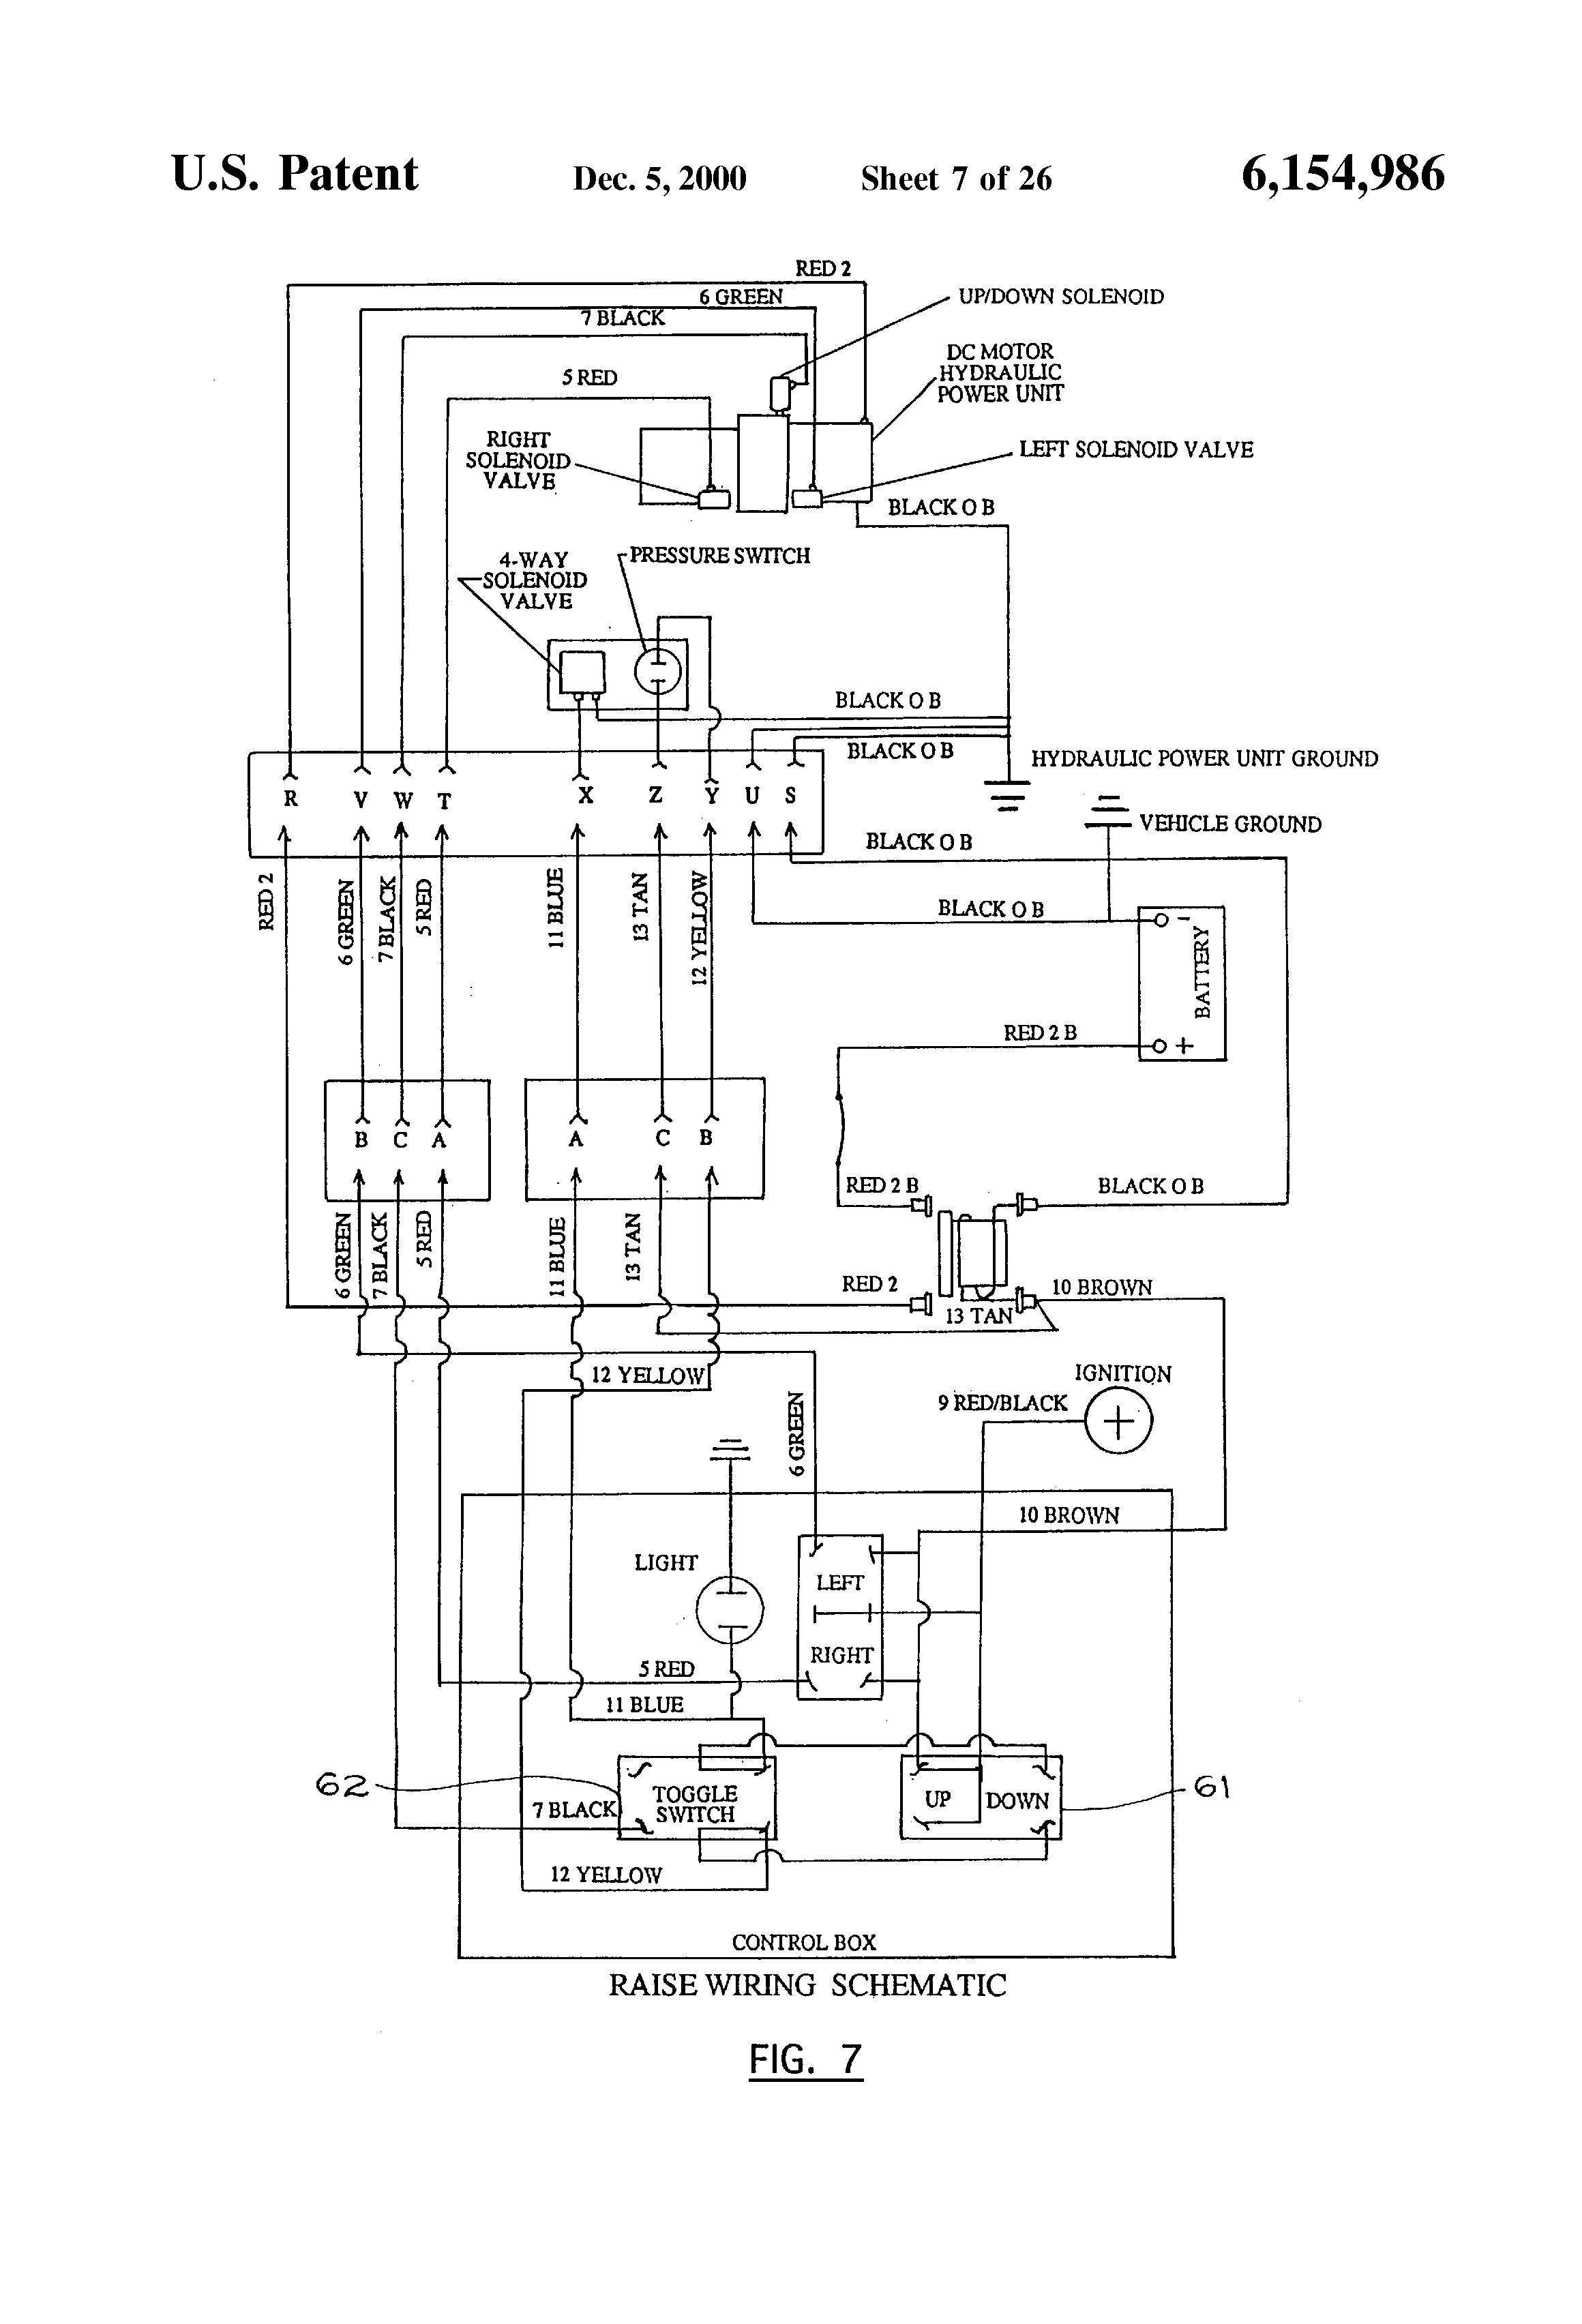 [DIAGRAM_09CH]  DIAGRAM] Western Unimount Wiring Diagram FULL Version HD Quality Wiring  Diagram - EPIPHONEPREOWNED.EDITIONSDUSAMOVAR.FR | Western Plow Controller Wiring Diagram For Switch |  | epiphonepreowned.editionsdusamovar.fr